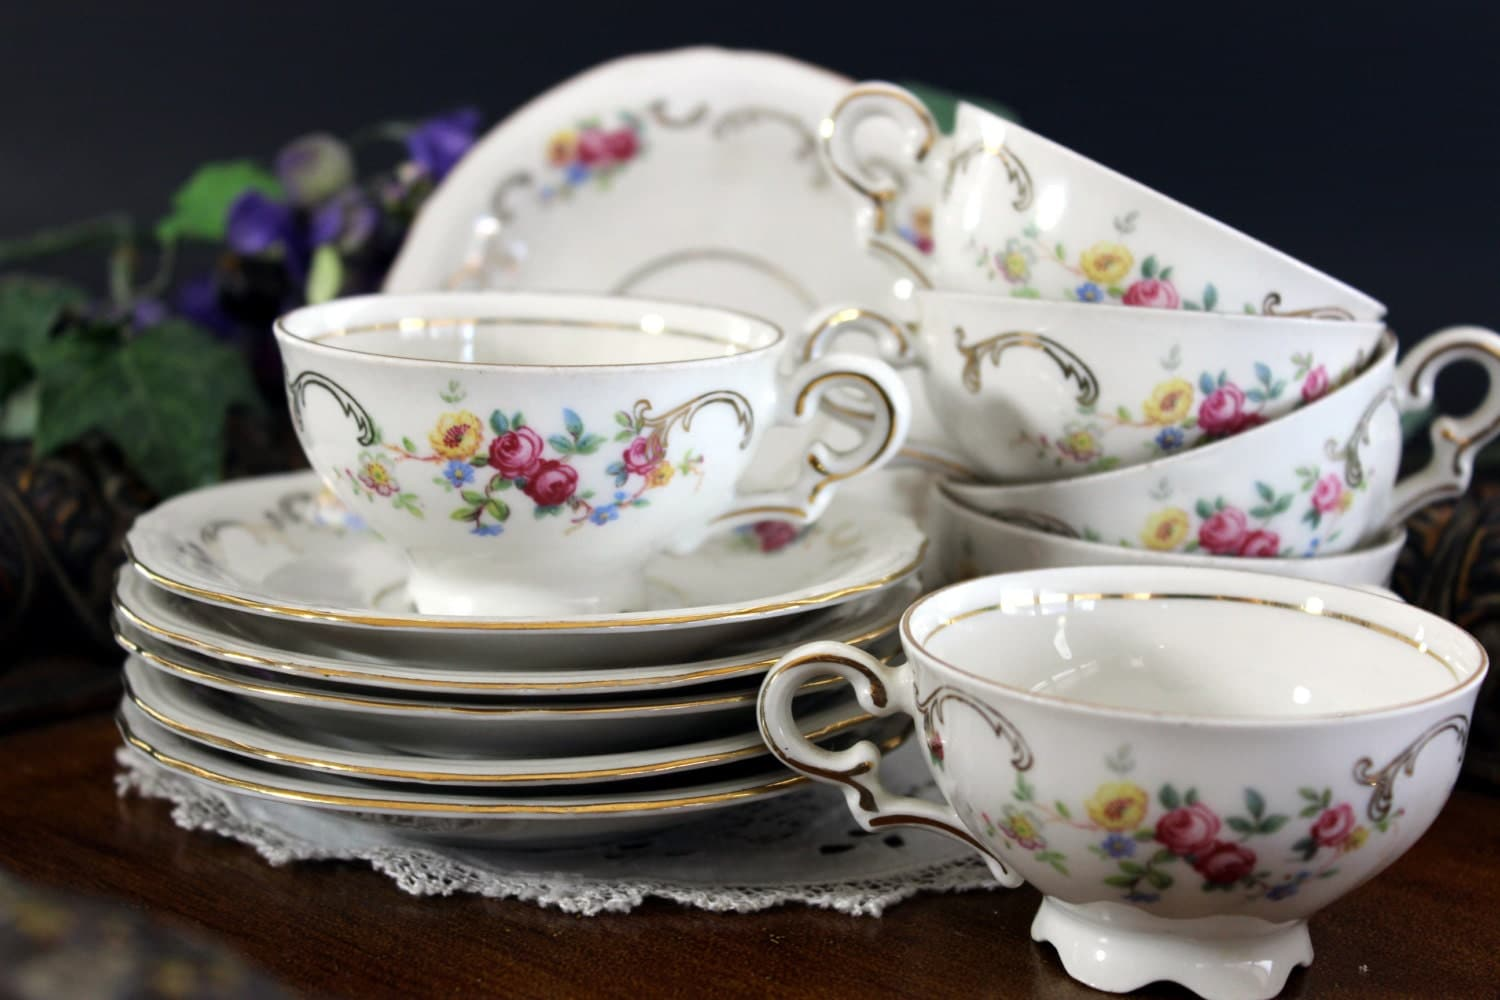 Demitasse Cups Small Tea Cups And Saucers European